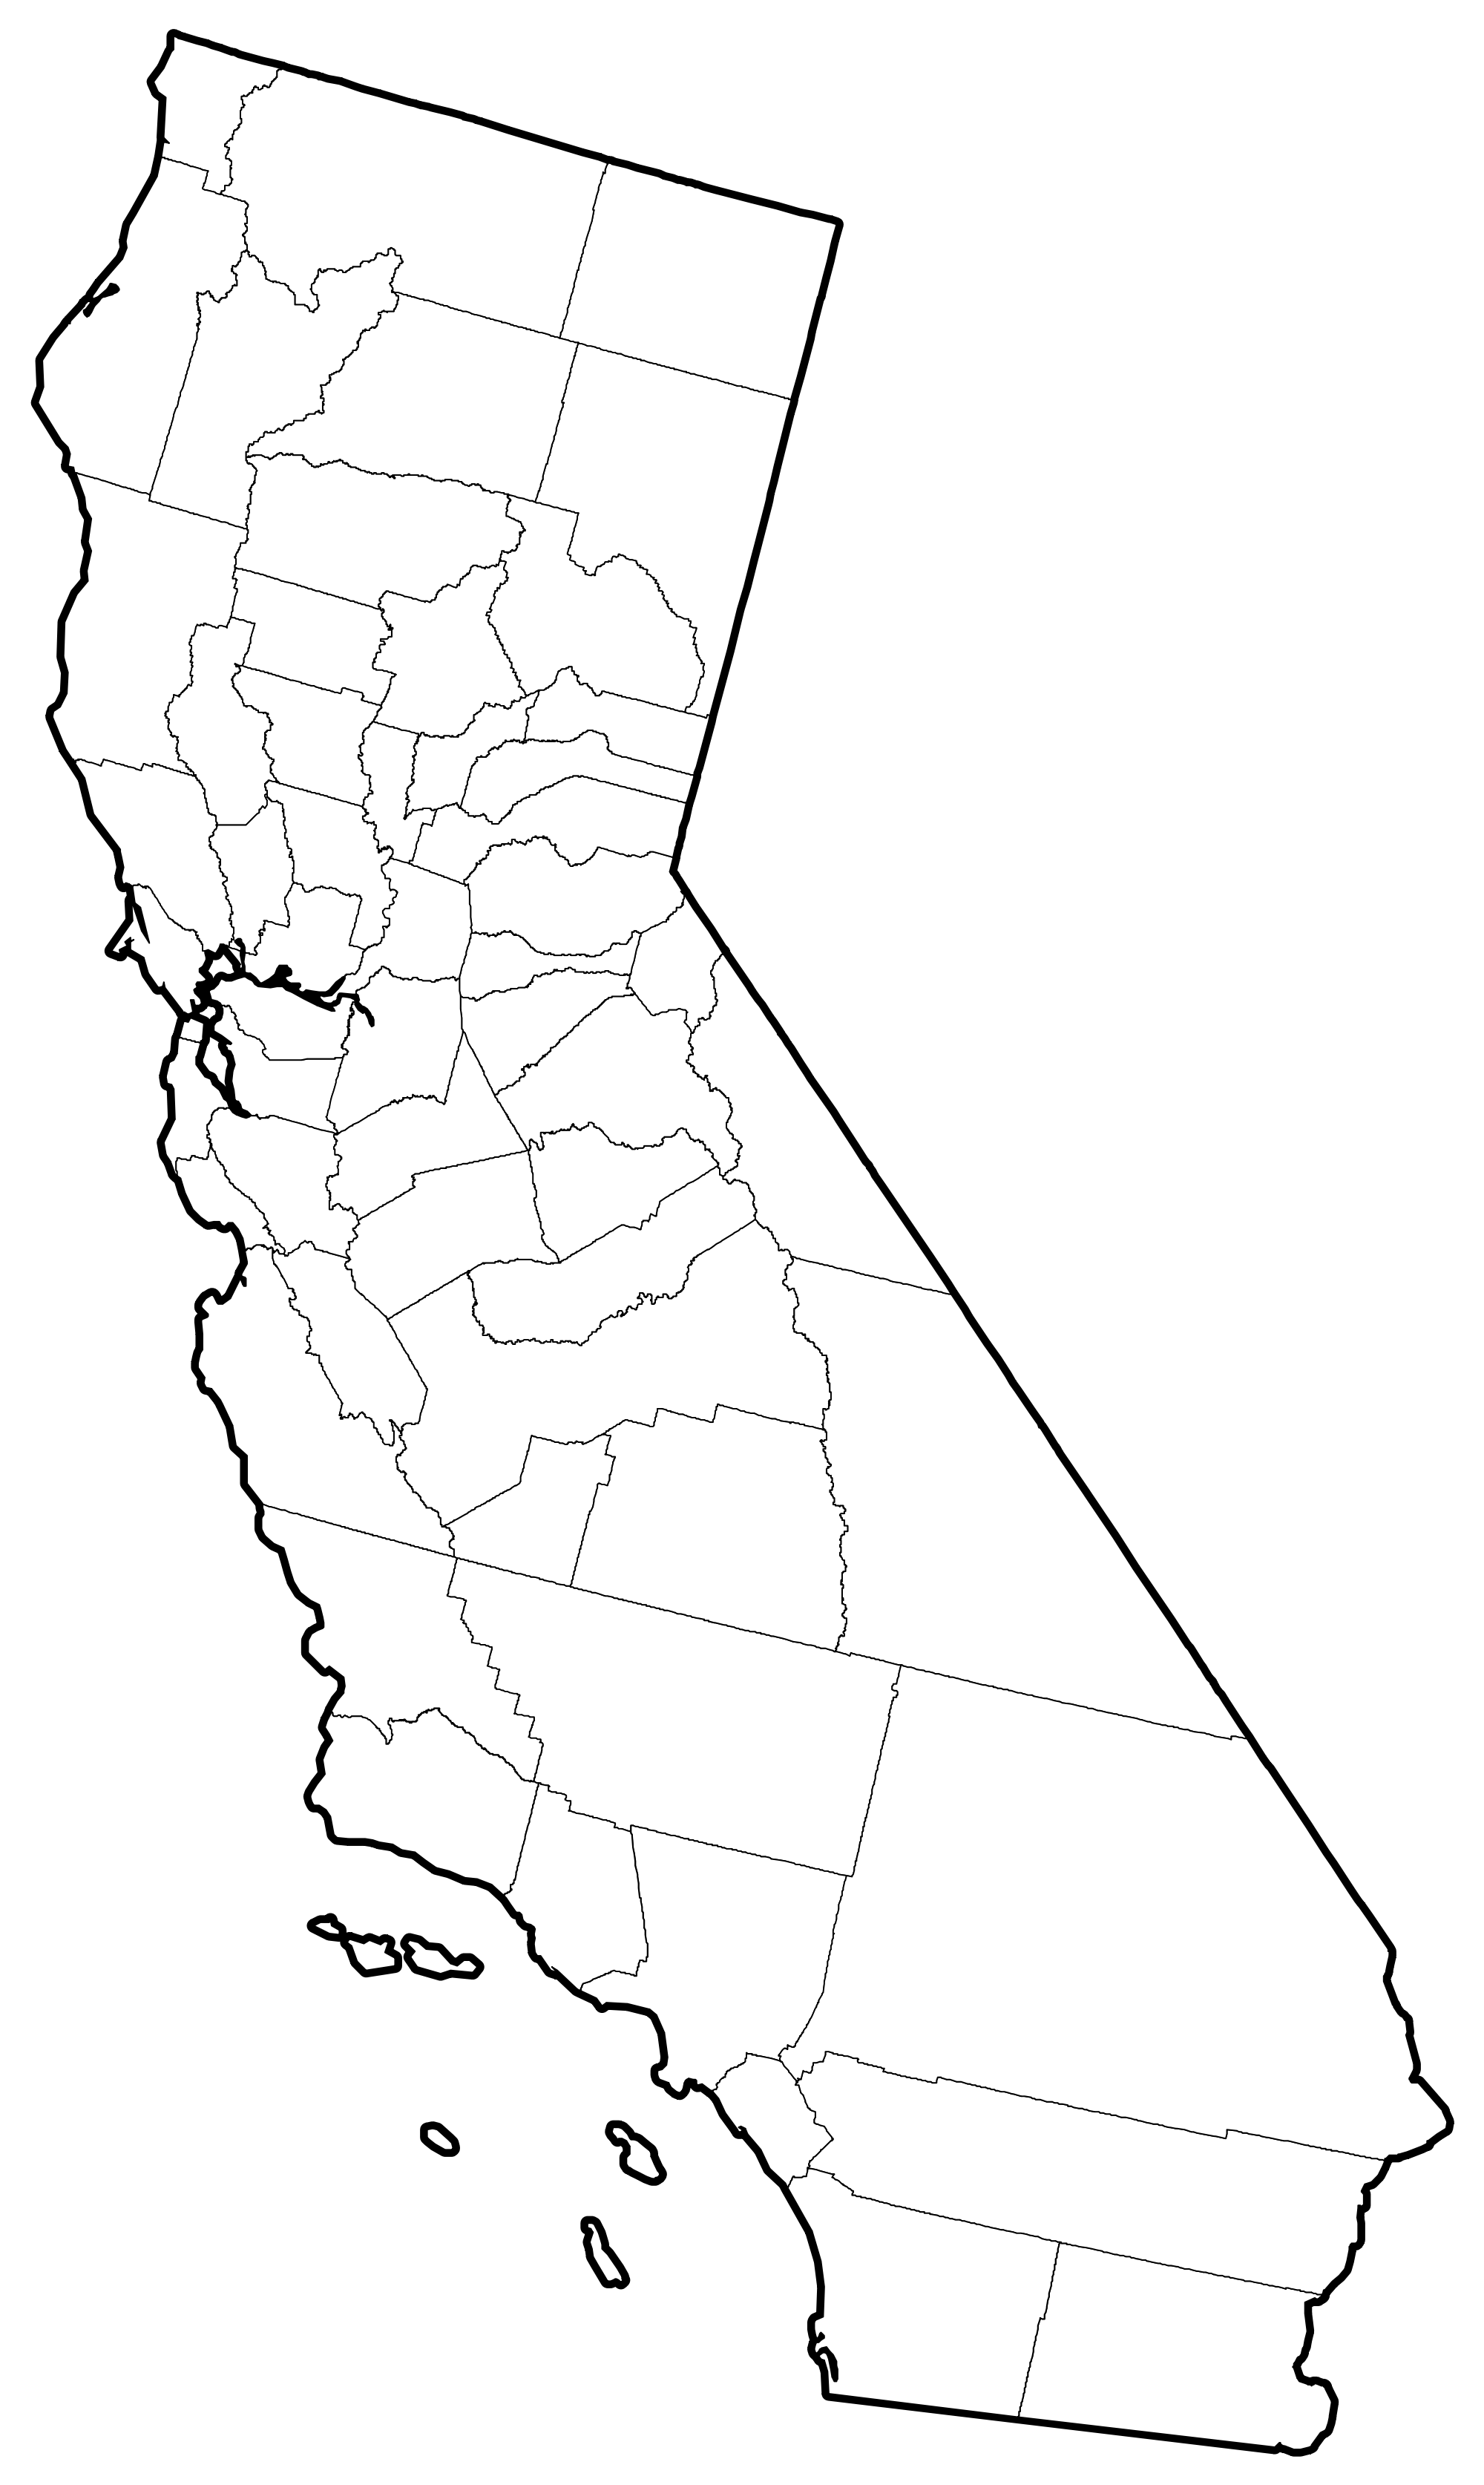 California state outline png. File counties map svg